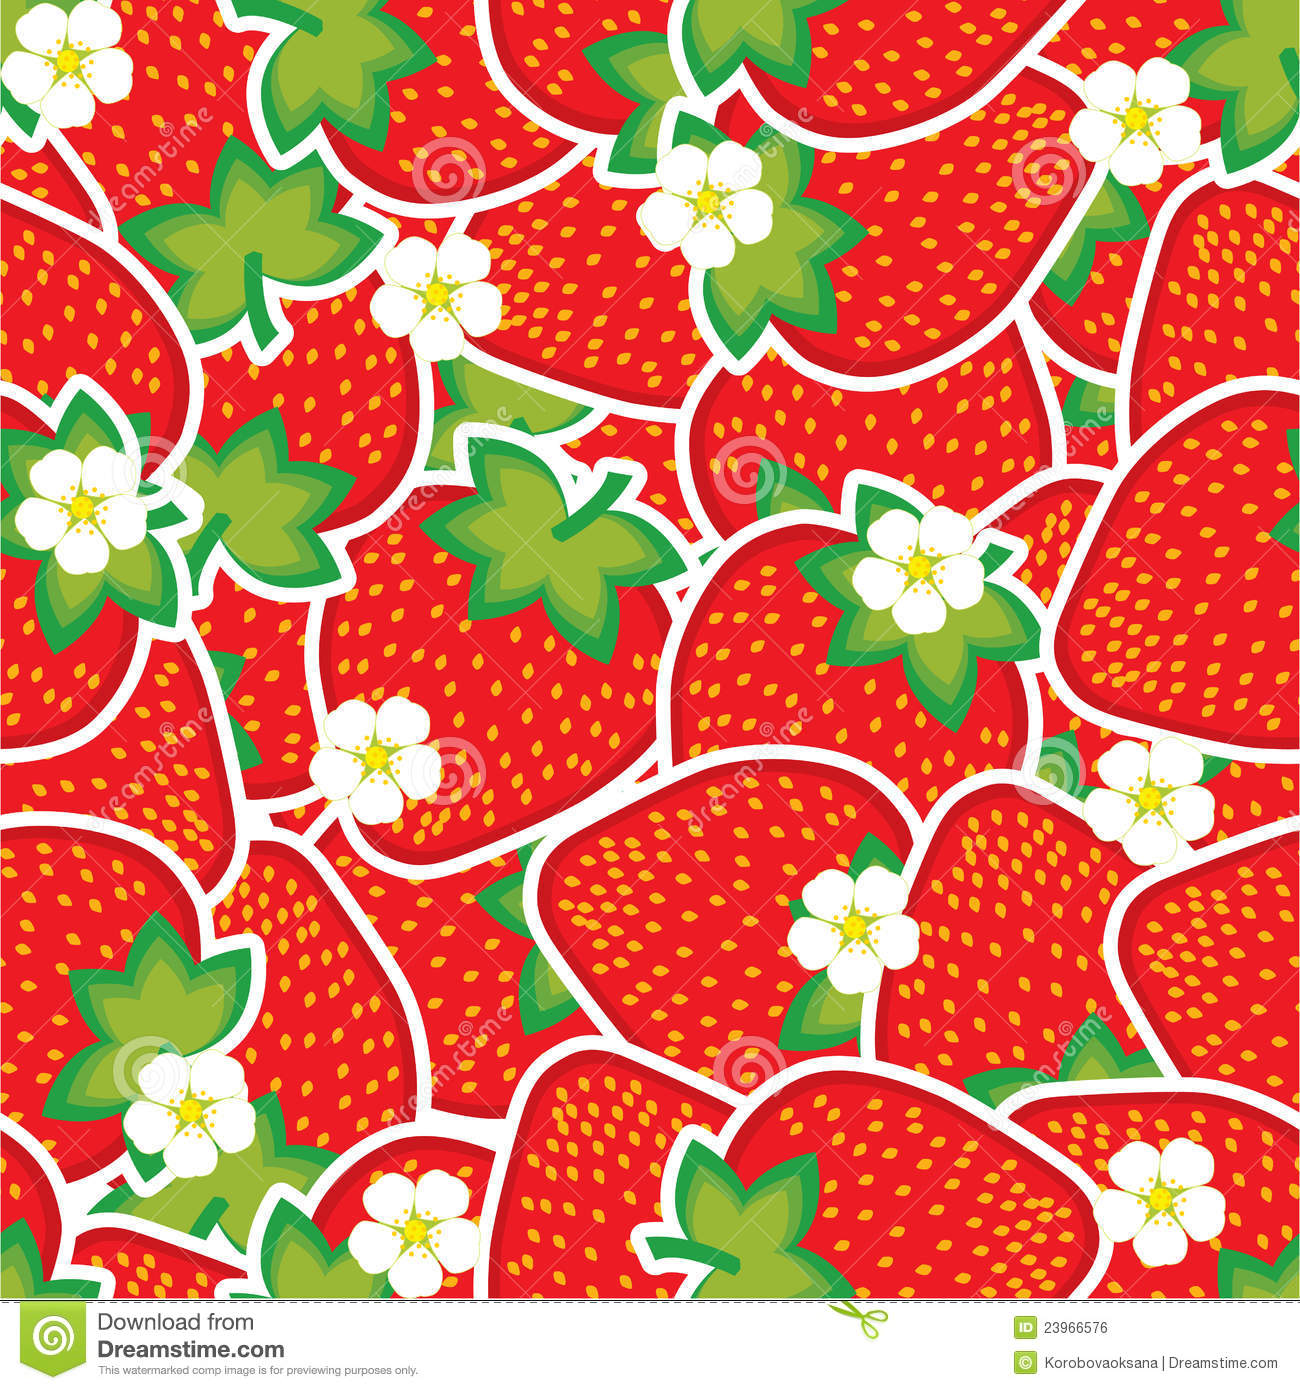 Strawberry Pattern Royalty Free Stock Image - Image: 23966576